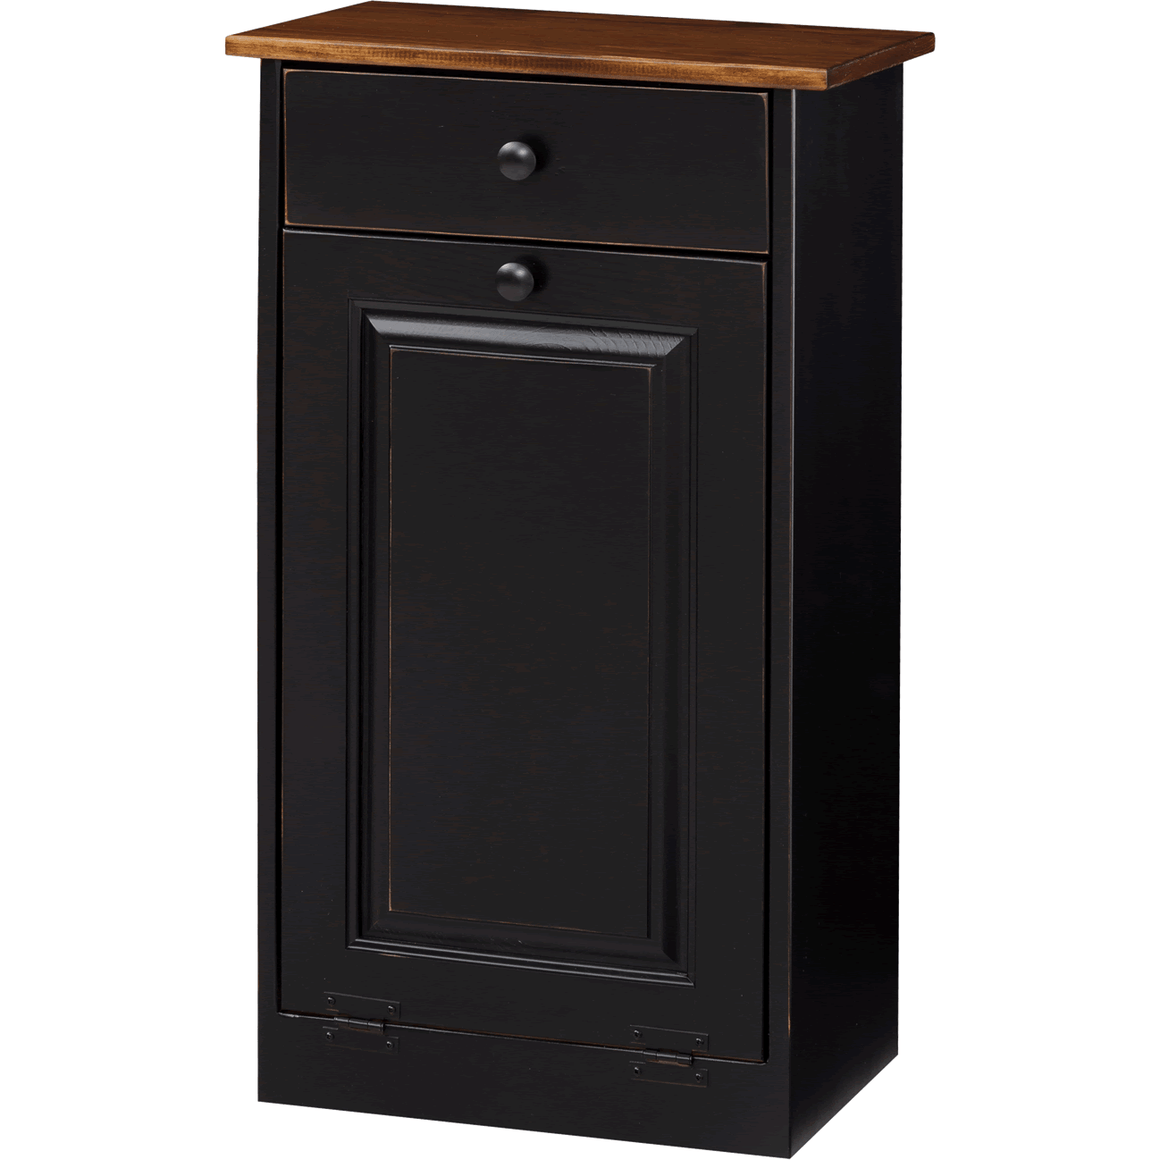 Trash Bin Cabinet with Wood (IE #82W)